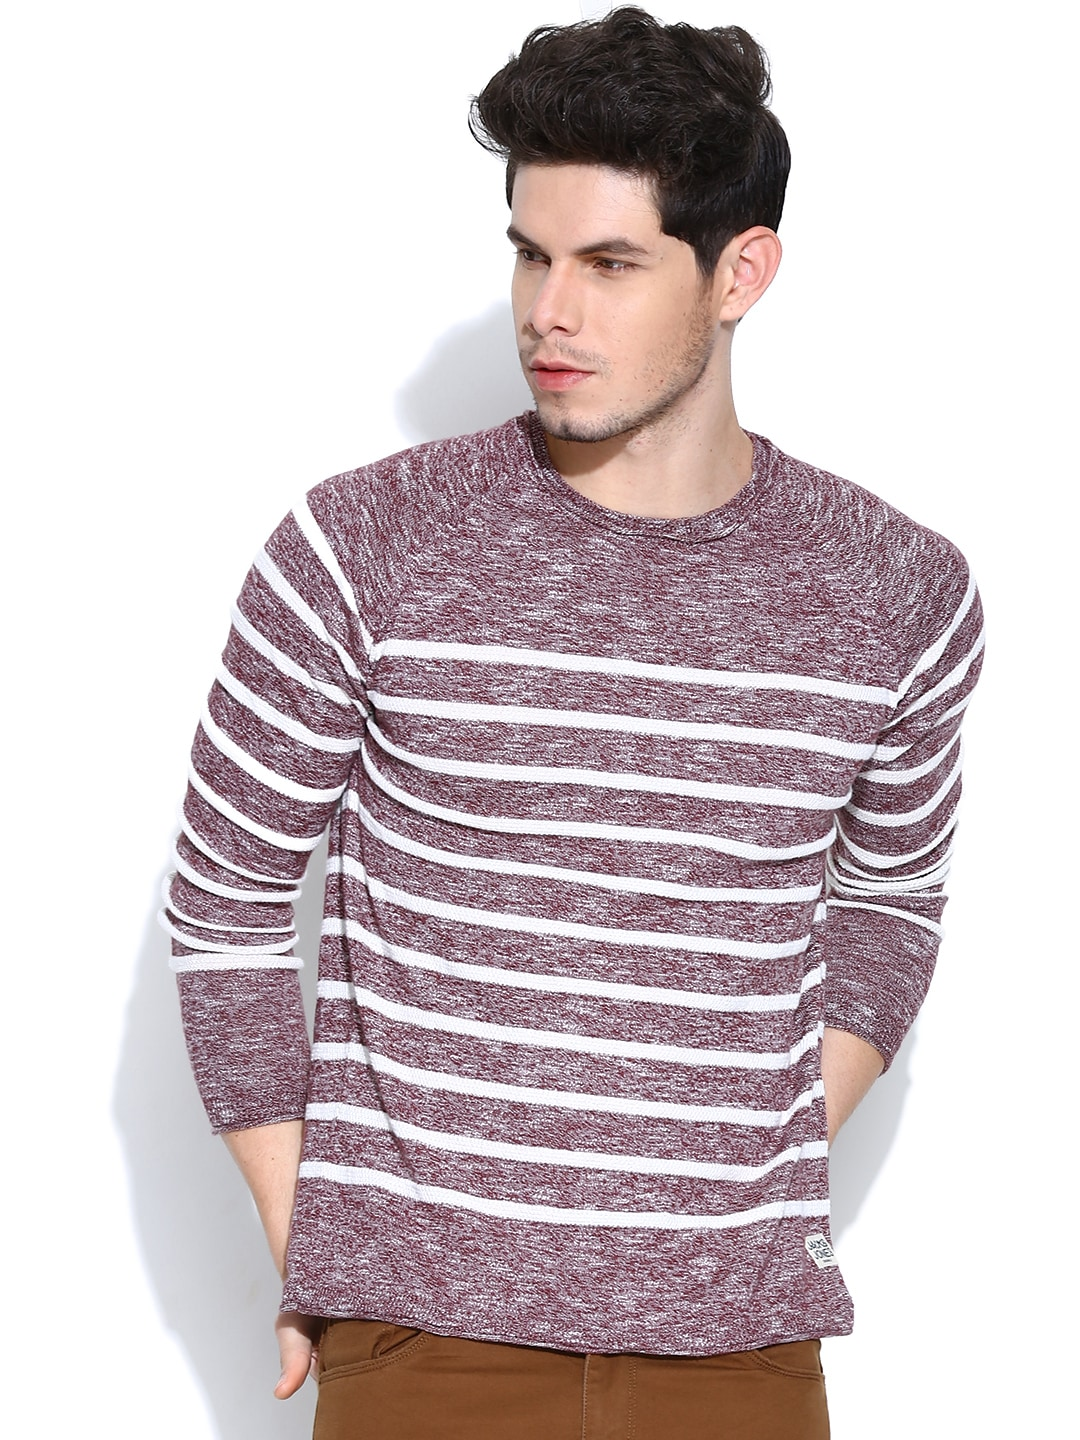 Fashion Splash Sweaters - Buy Fashion Splash Sweaters online in India